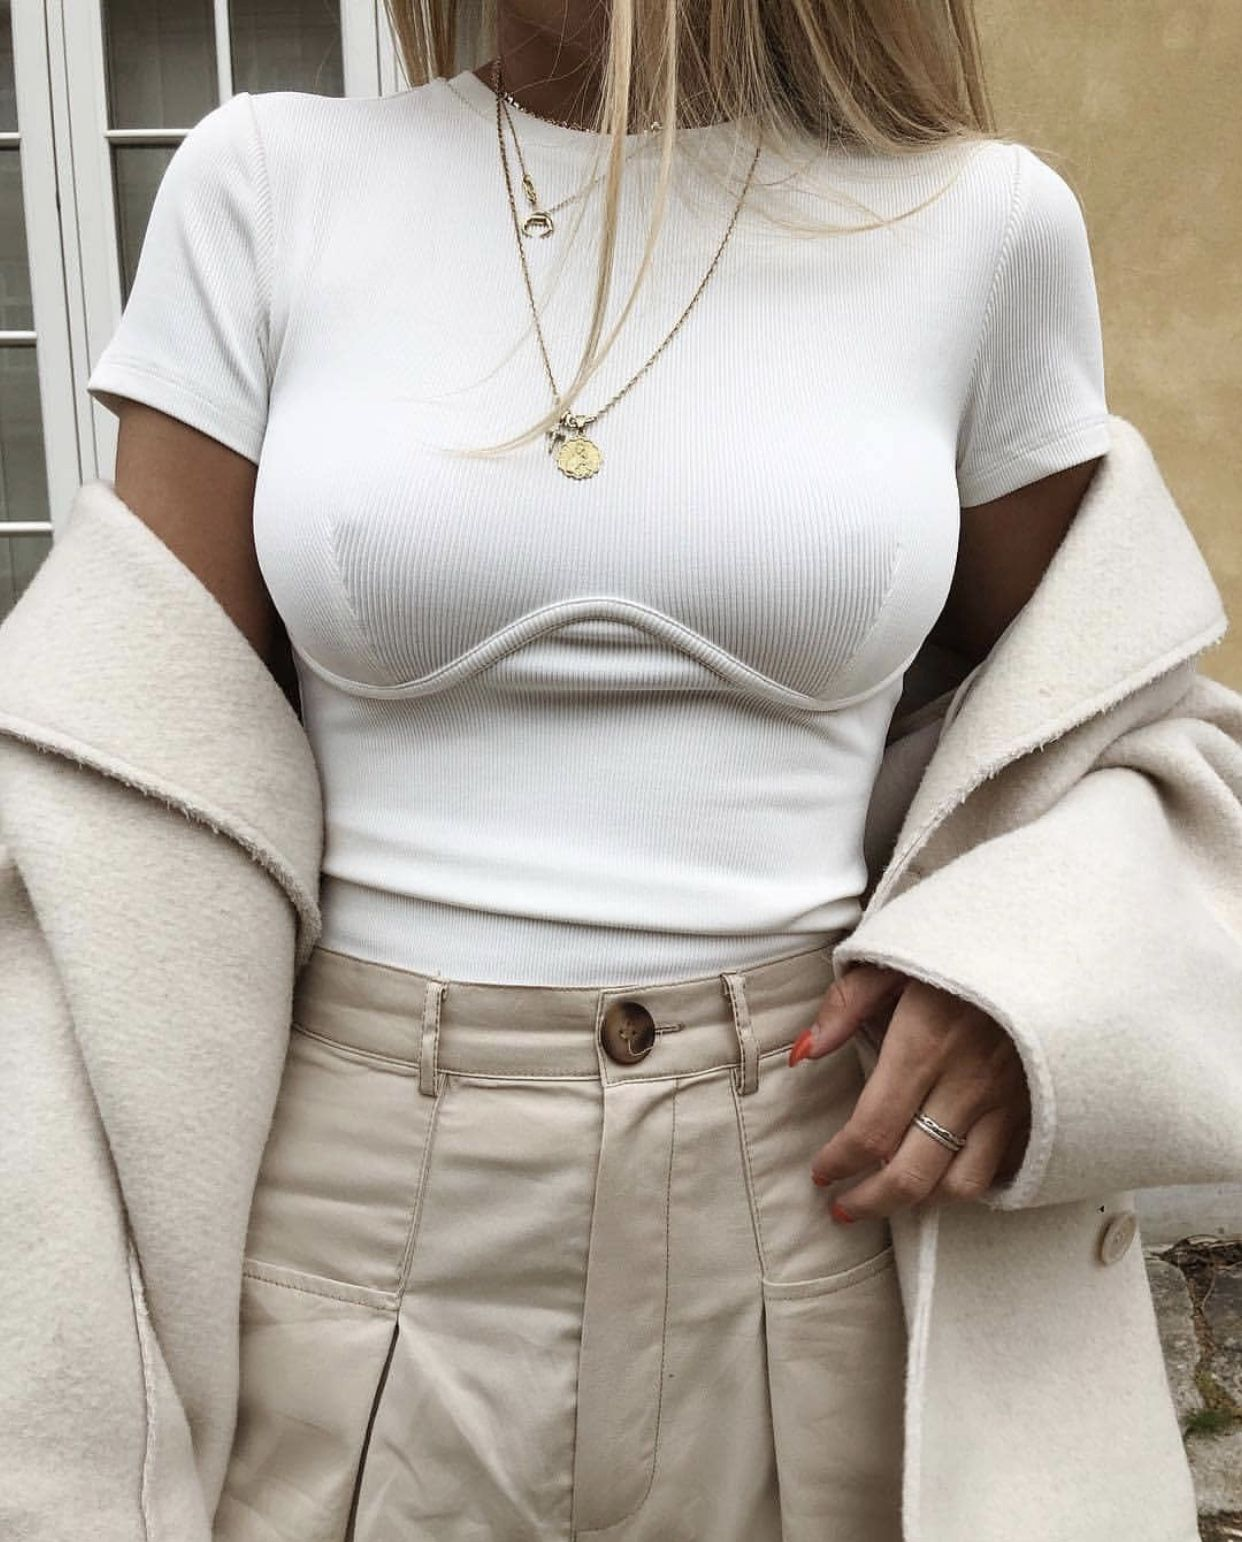 Vintage Underlined White Top | Shop now!